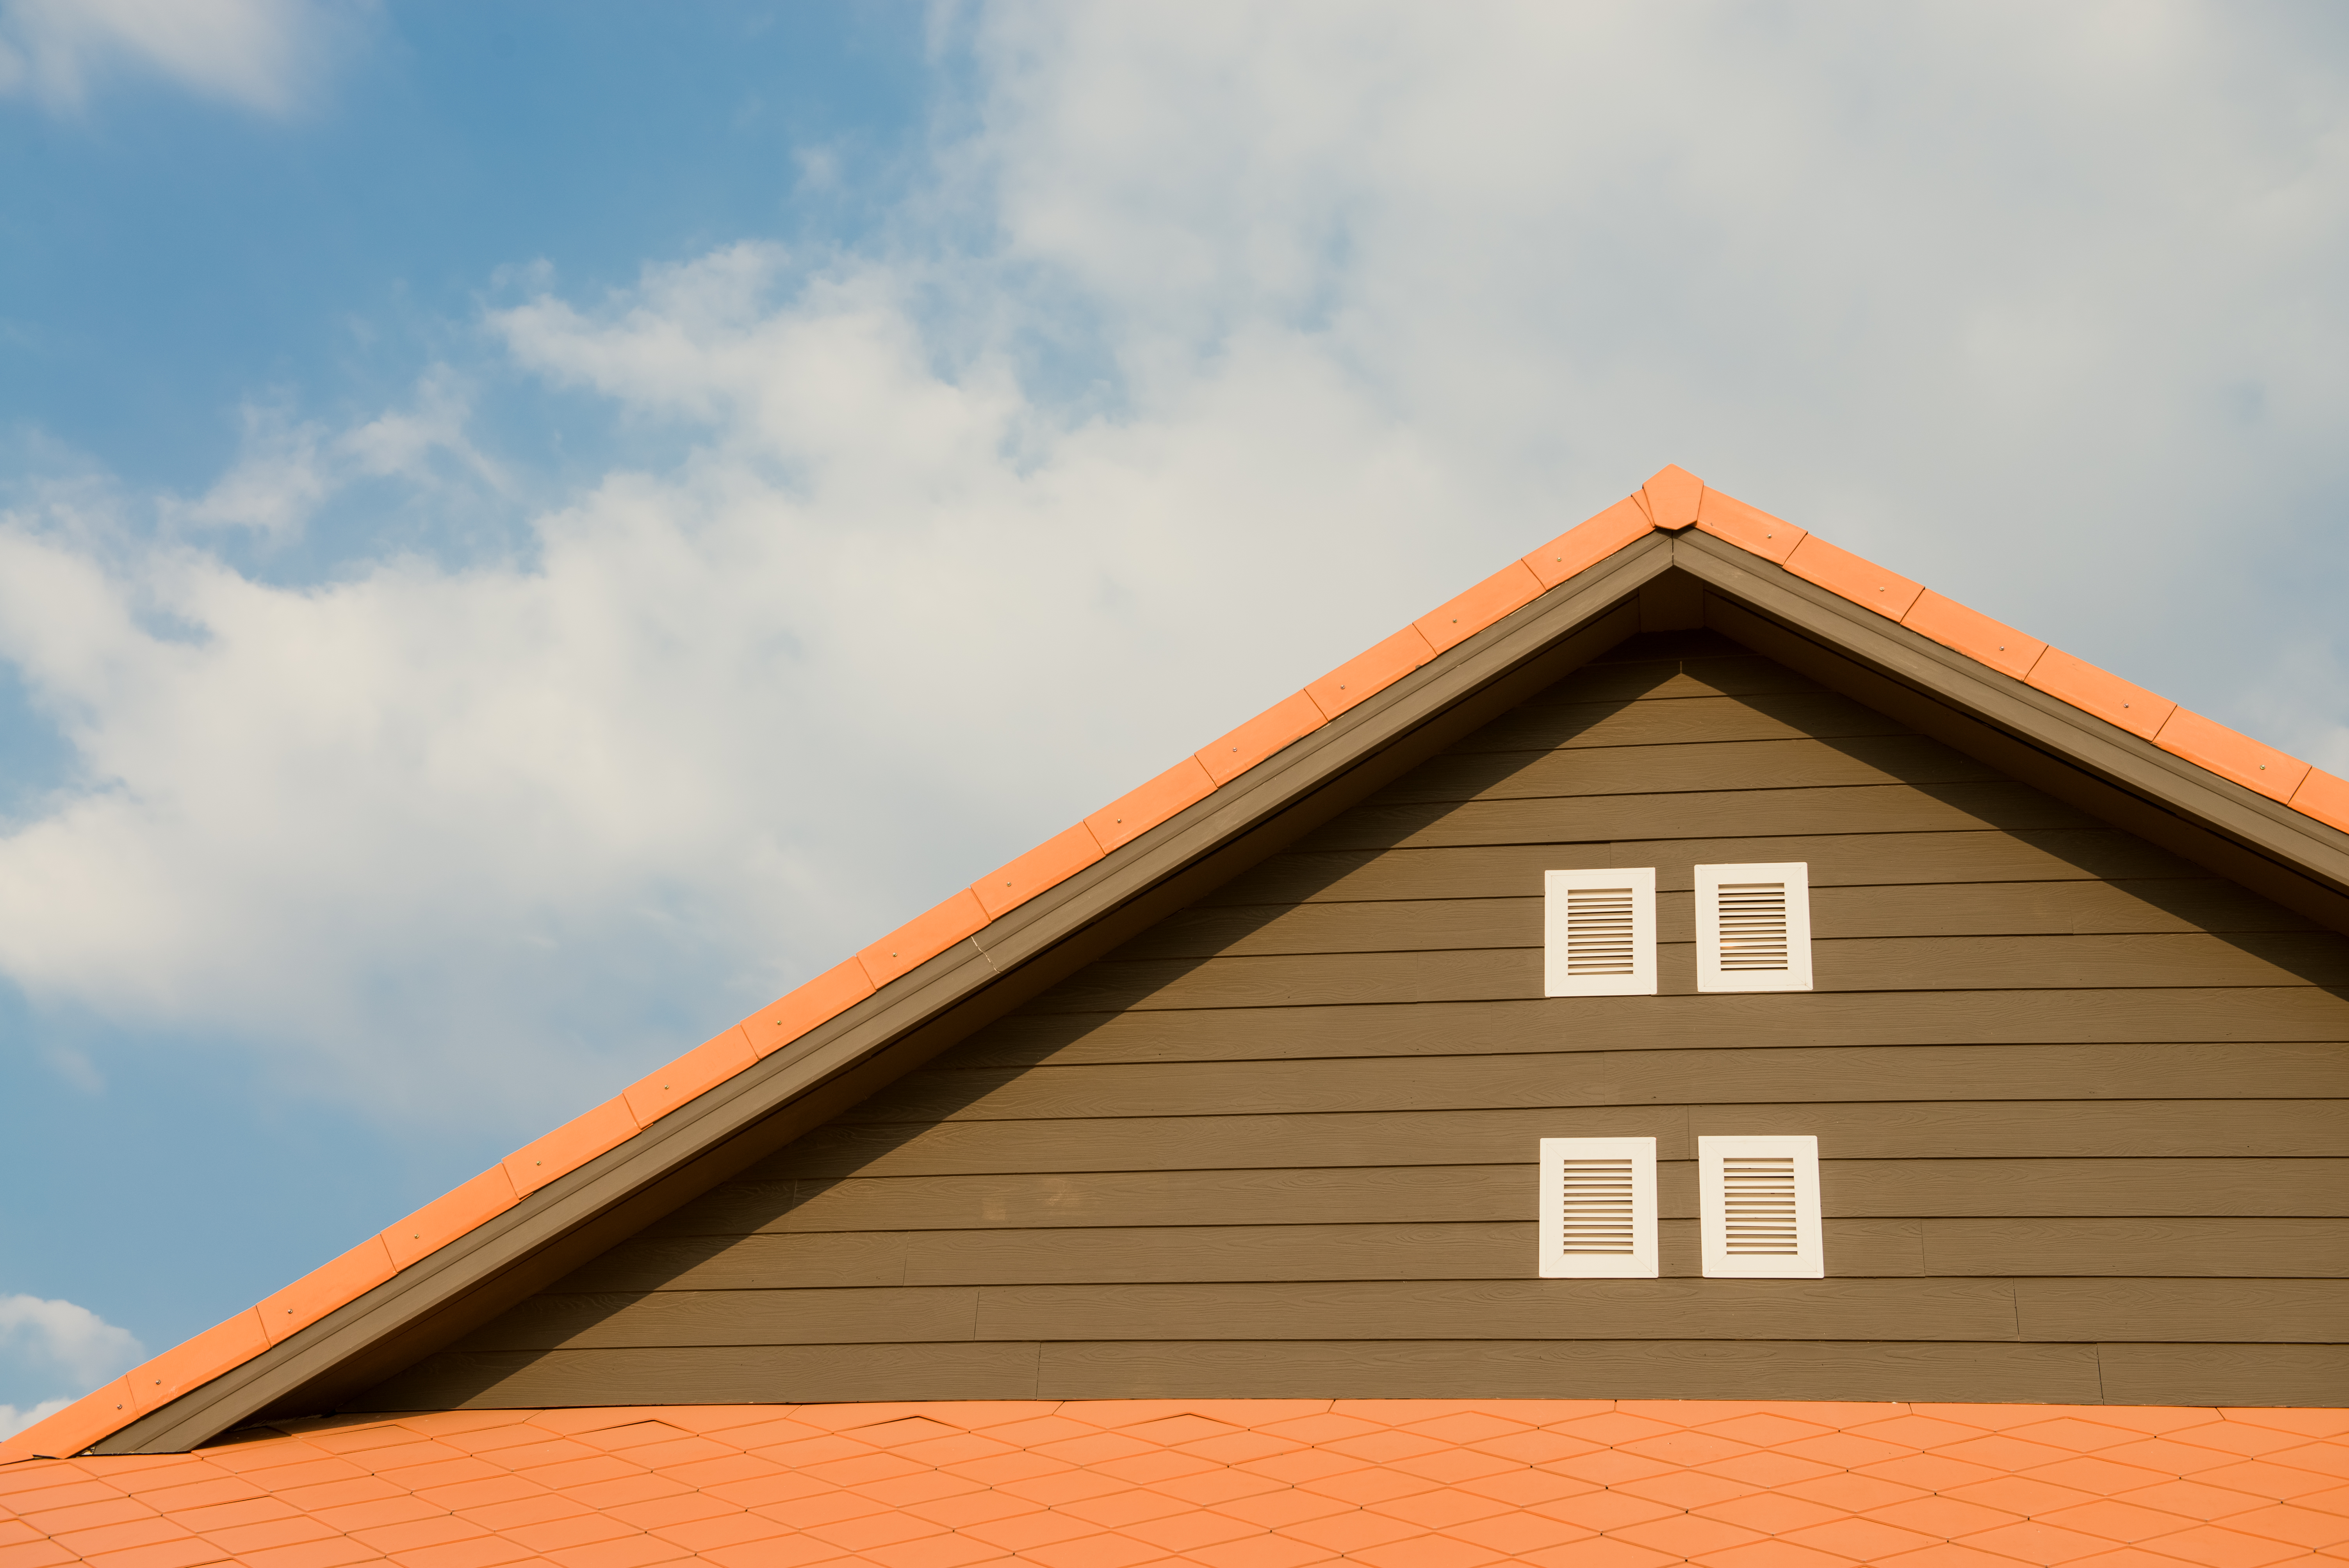 Orange and gray roof under blue sky with white clouds.